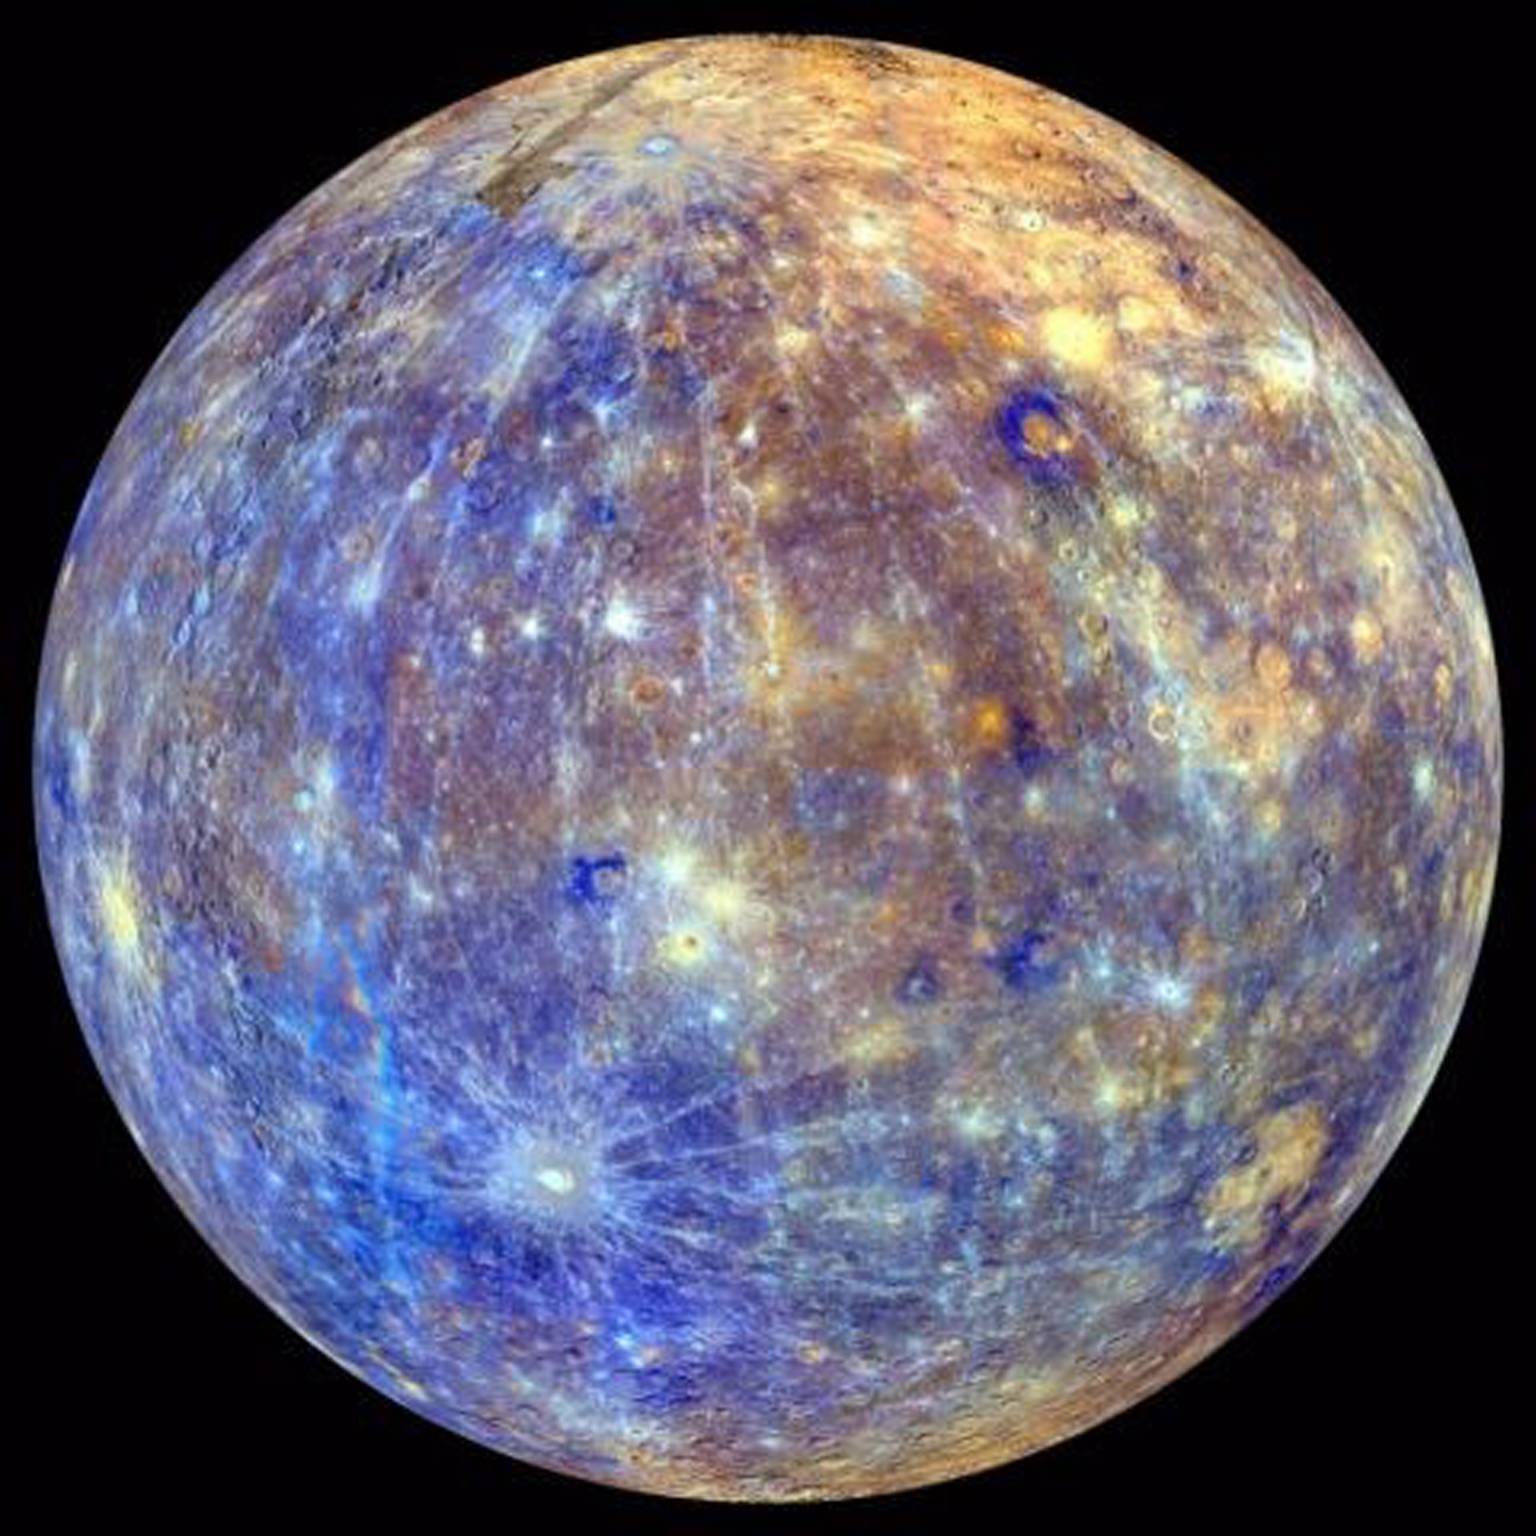 The Planet Mercury - Closest Planet to our Sun